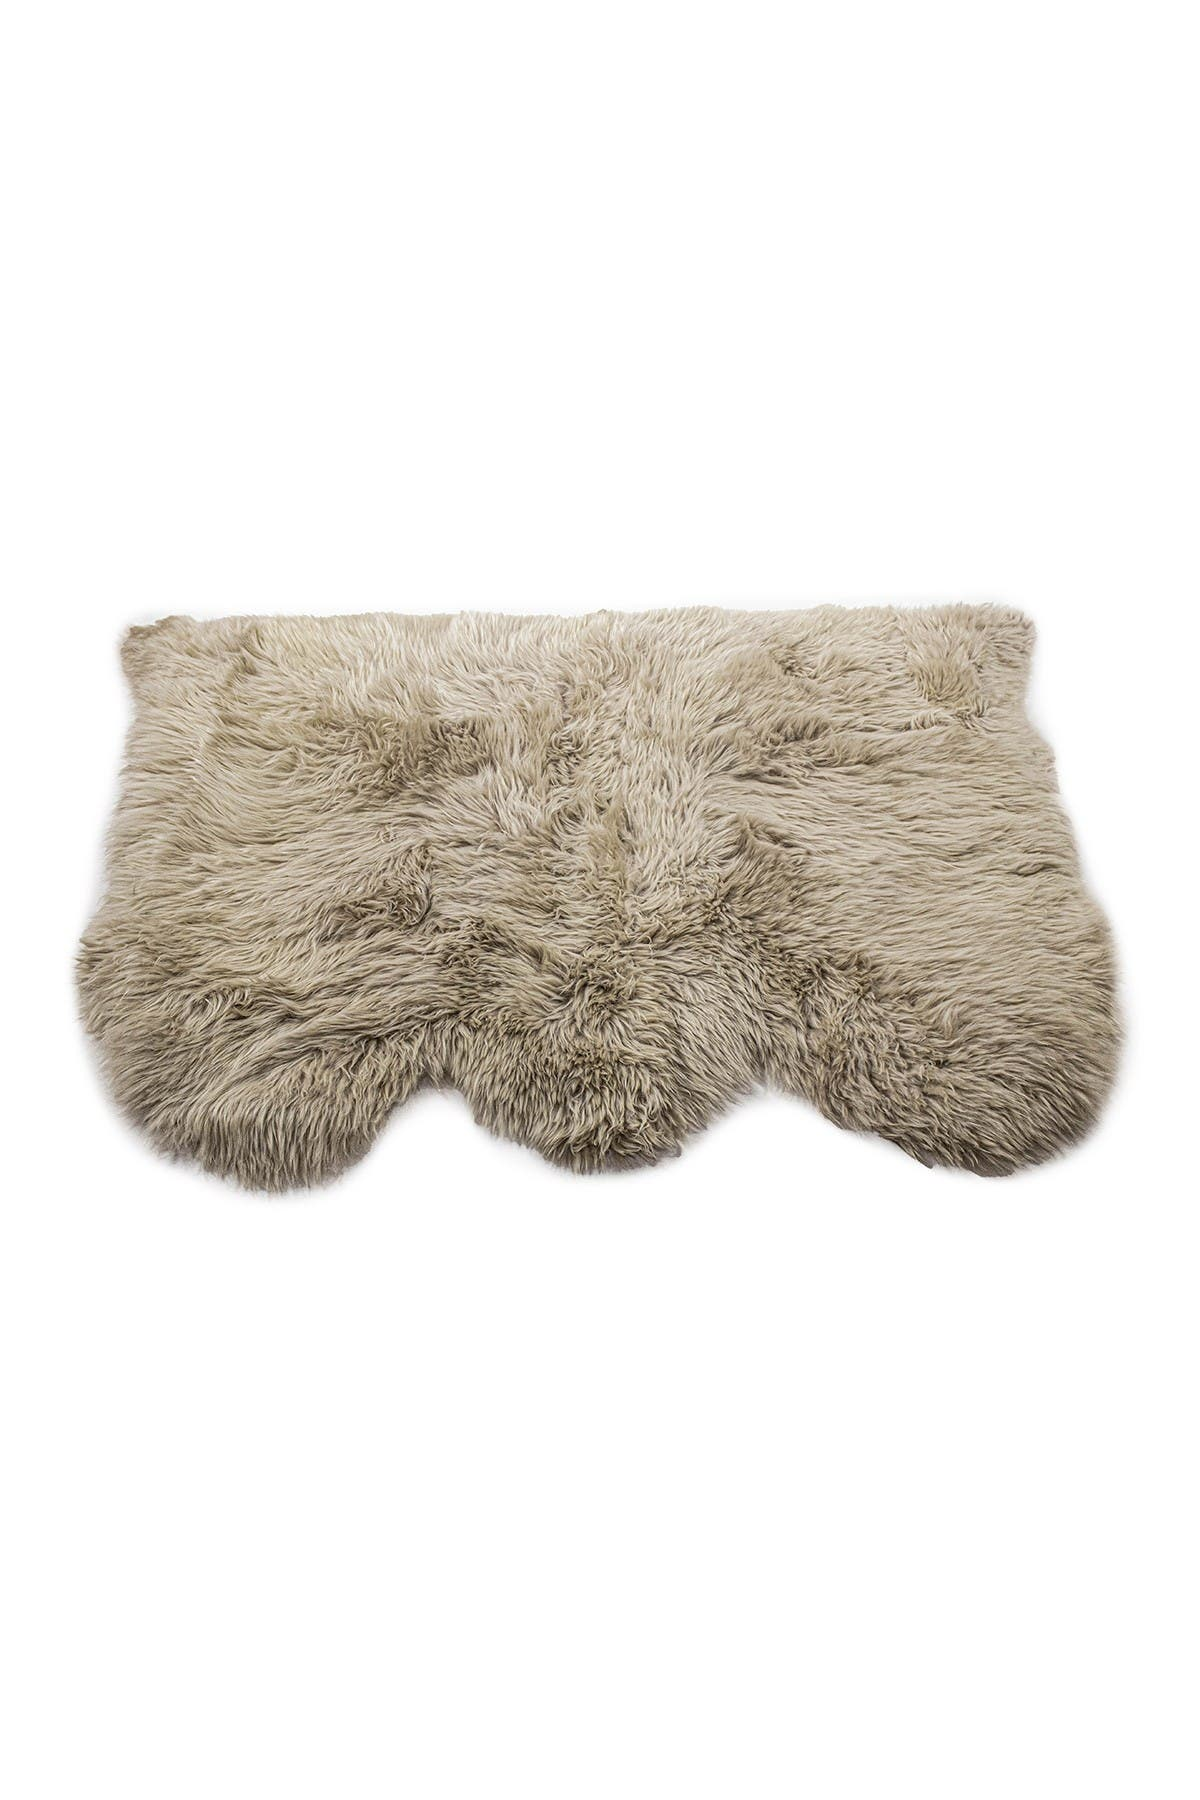 Image of Natural New Zealand Triple Sheepskin Throw - 3ft X 5ft - Taupe